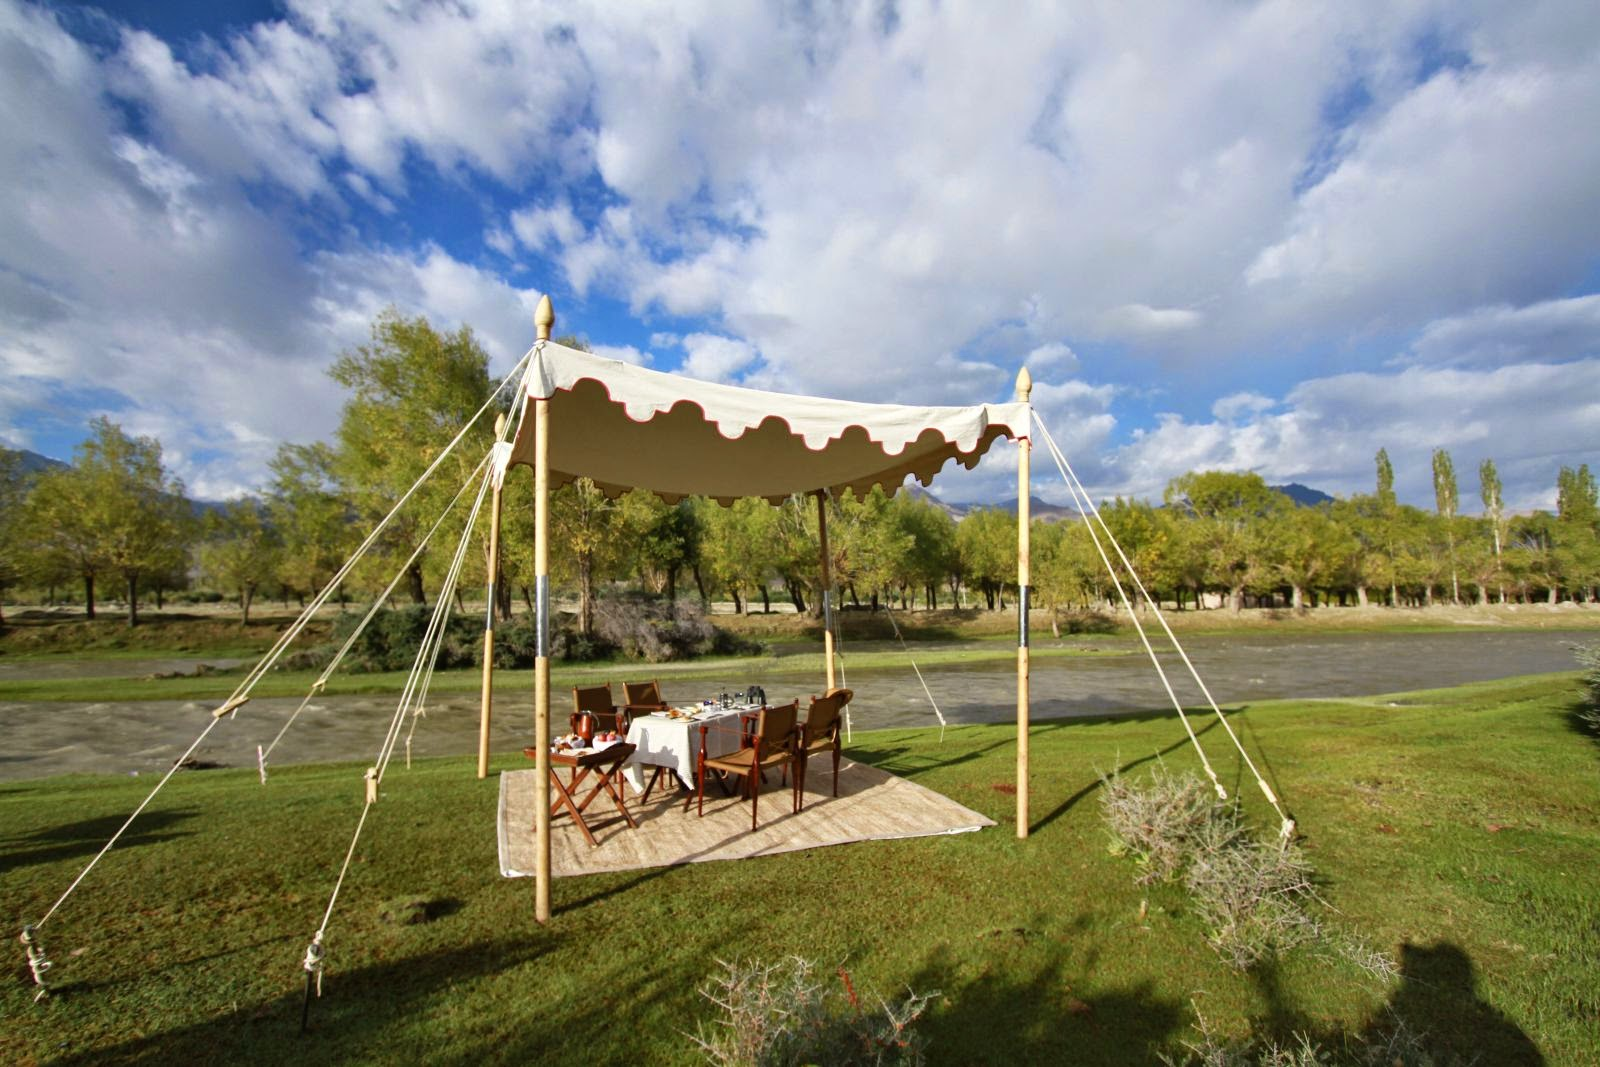 Picnic at the Ultimate Travelling Camp, Ladakh